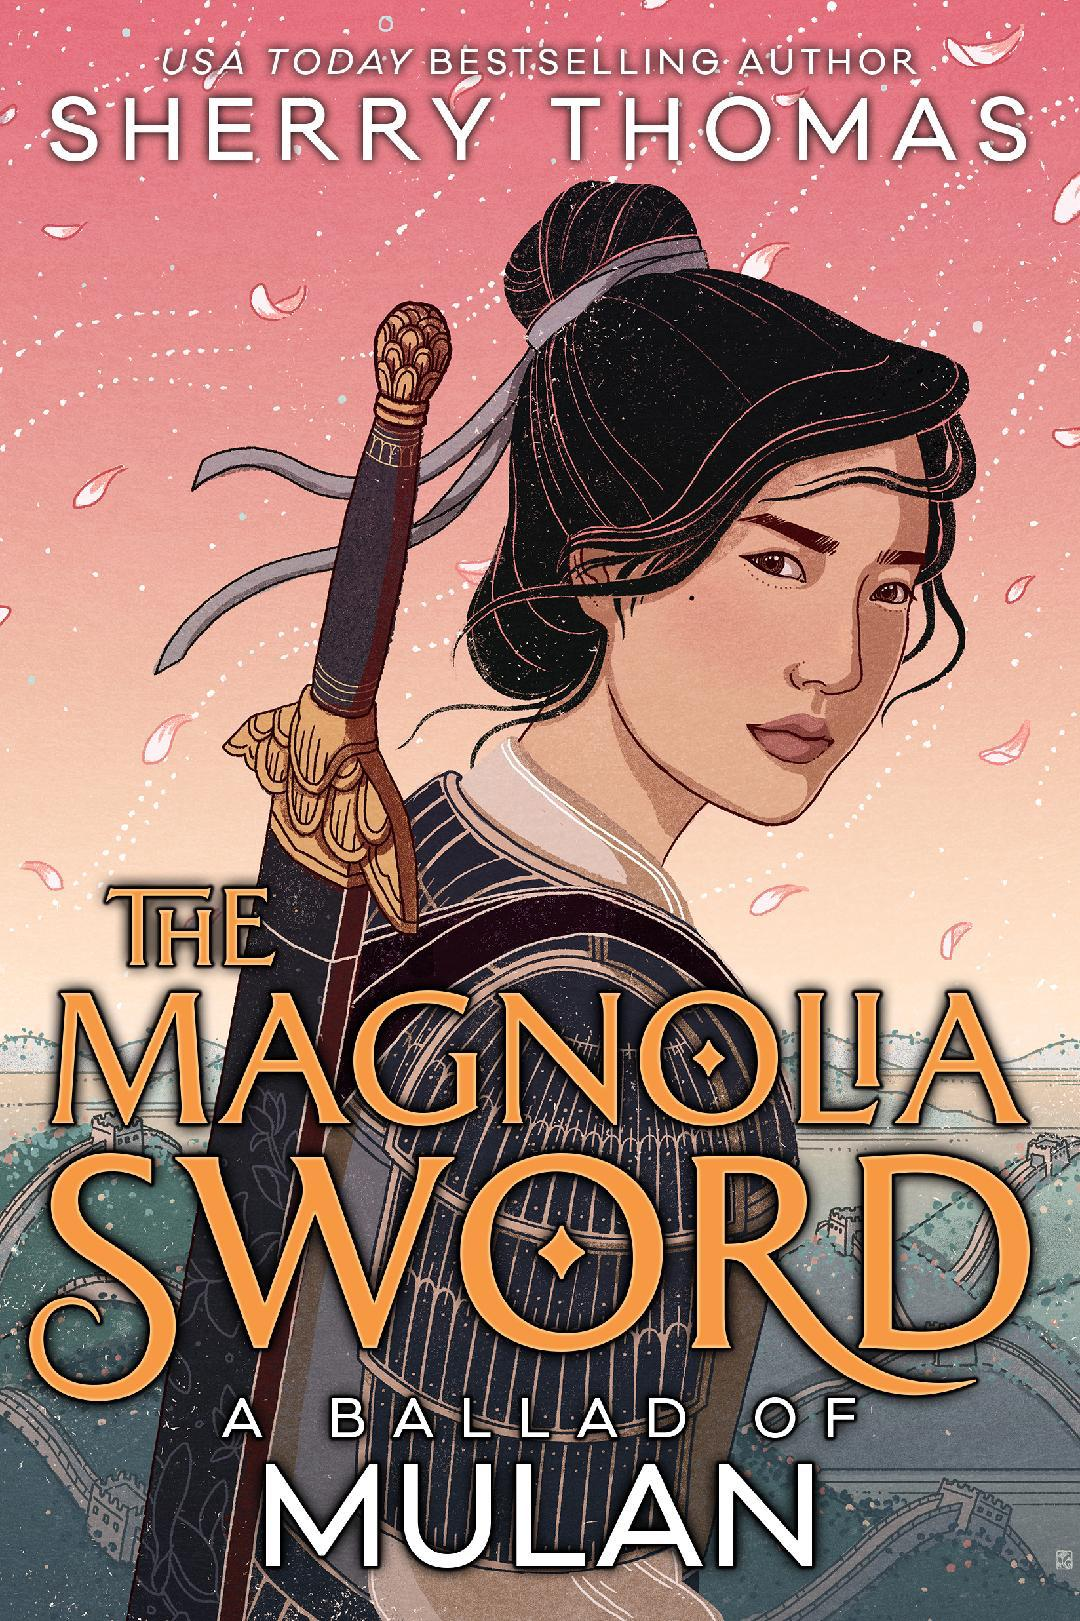 The Magnolia Sword A Ballad of Mulan